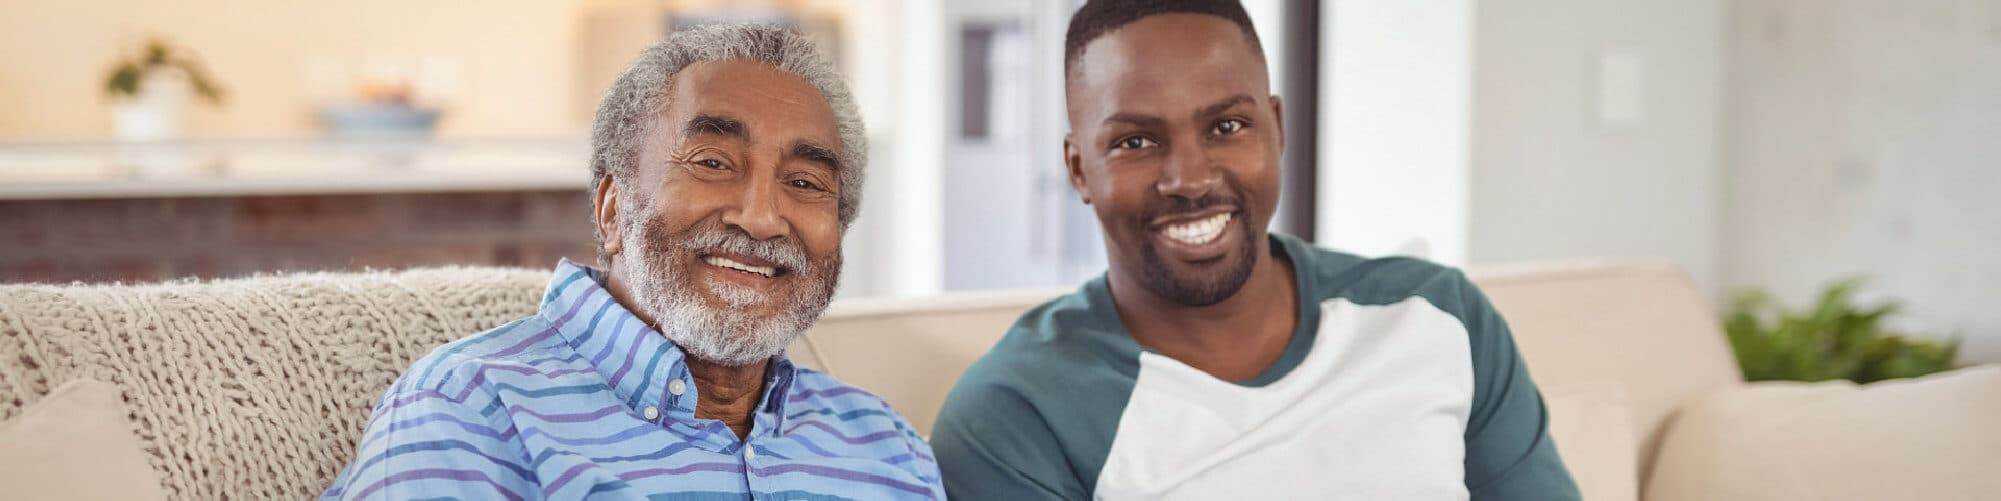 Elderly Man and his son smiling